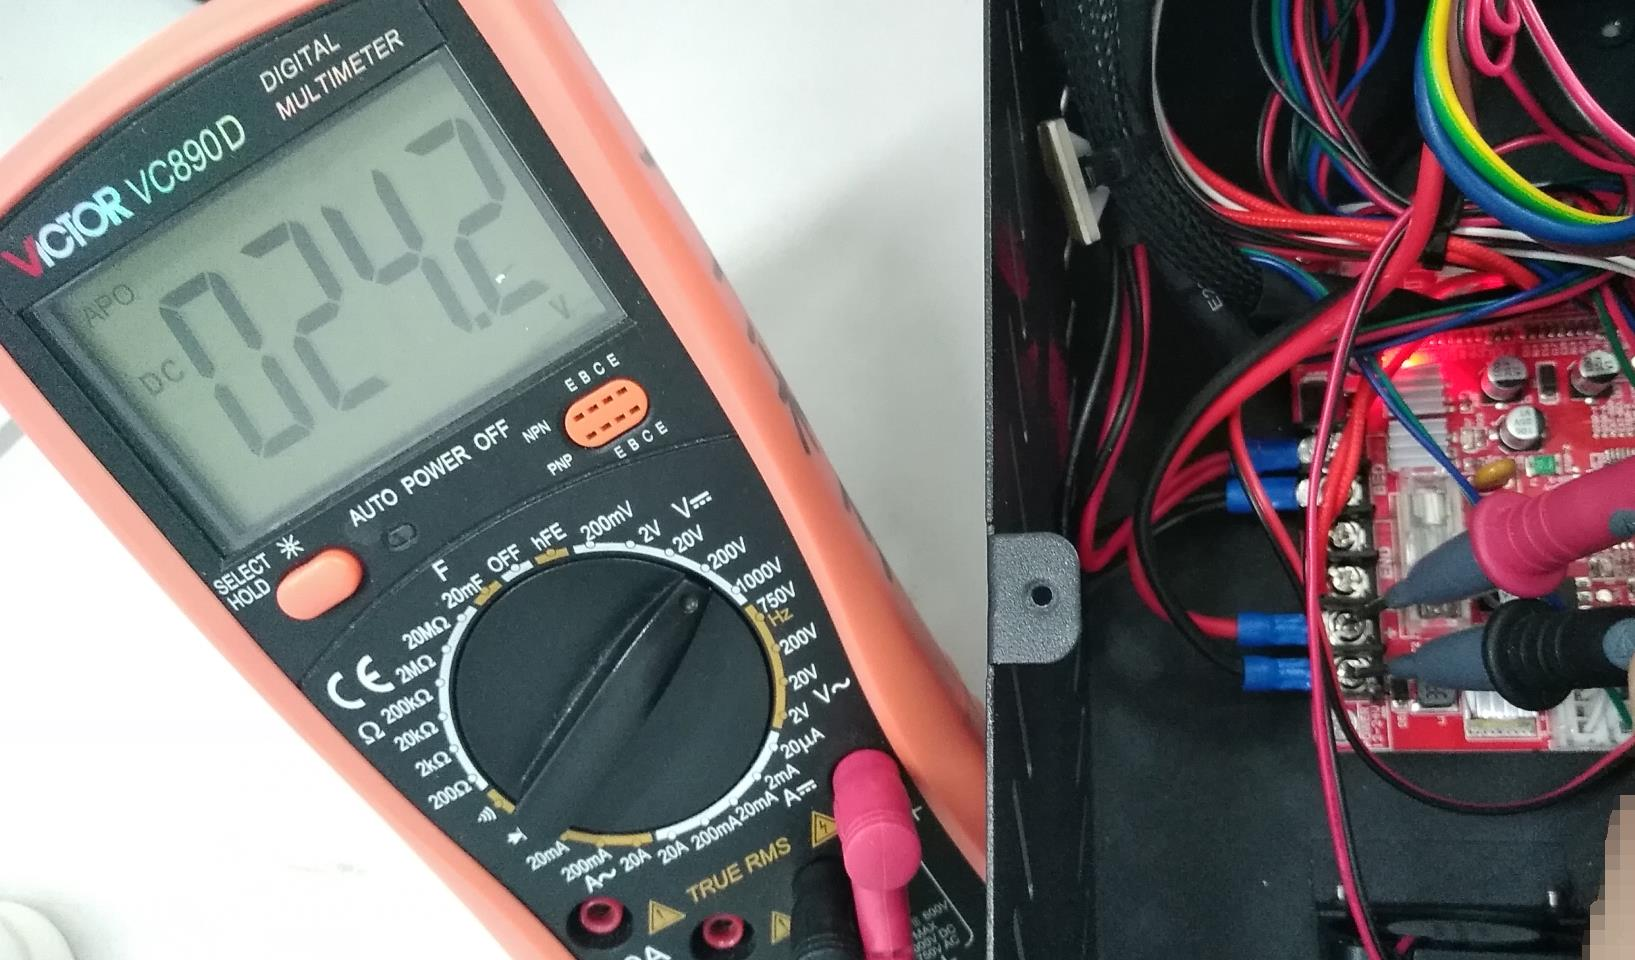 measure input voltage on the mainboard